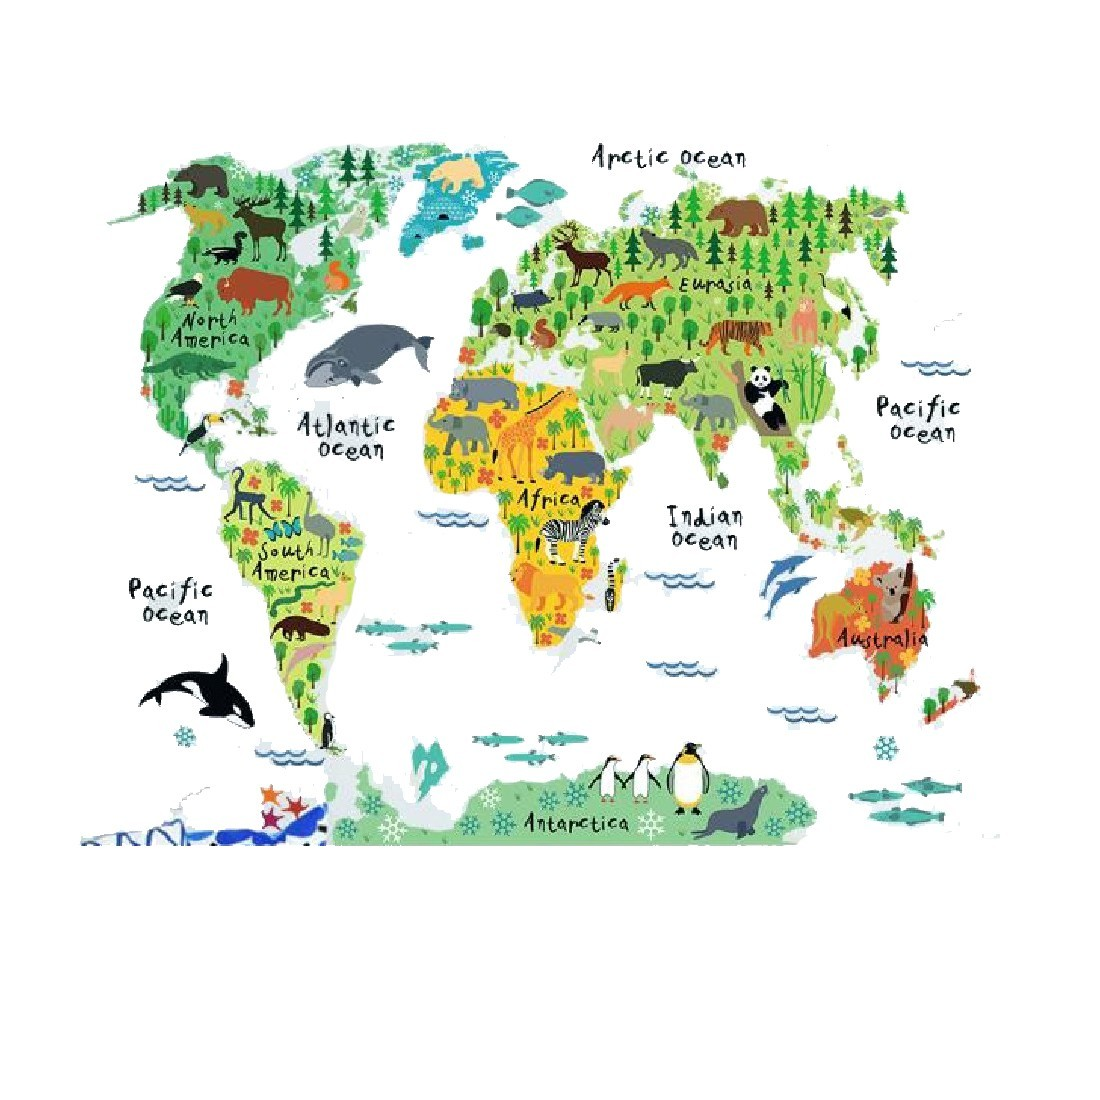 Hot sale removable diy mural wallpaper animal world map wall hot sale removable diy mural wallpaper animal world map wall stickers decal for home decoration free shipping in wall stickers from home garden on gumiabroncs Choice Image